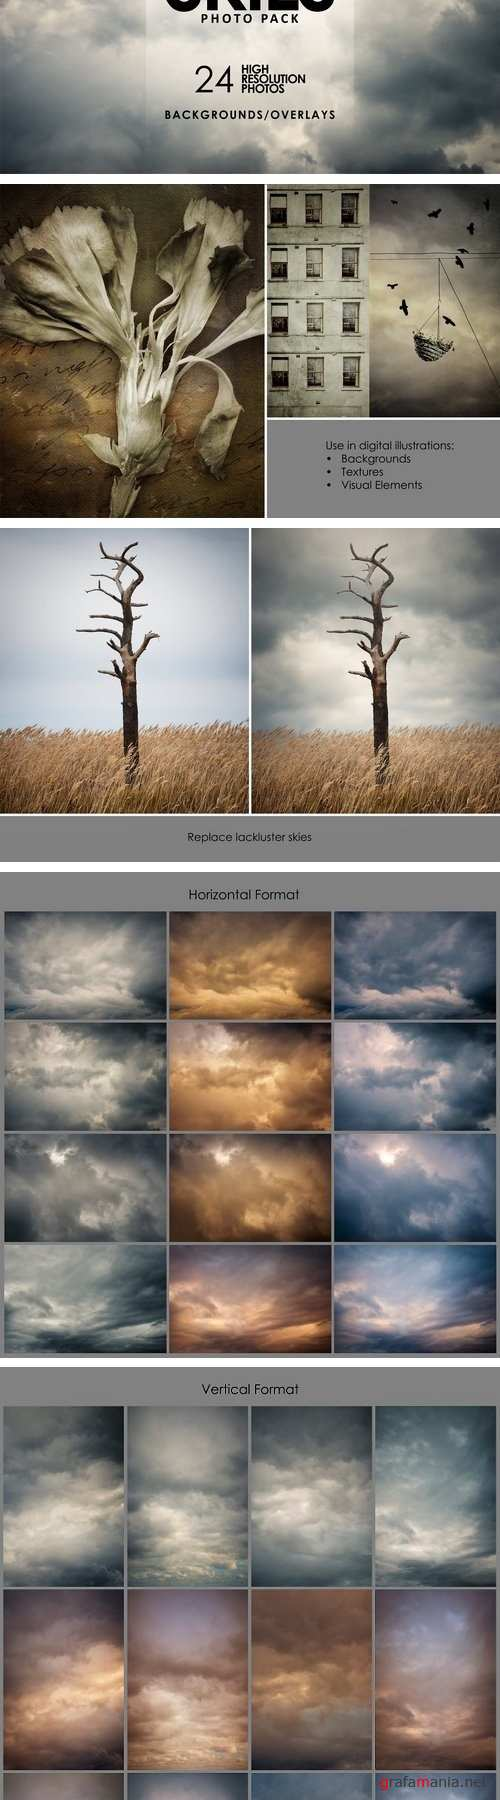 Cloudy Skies-Backgrounds & Overlays - 2083980